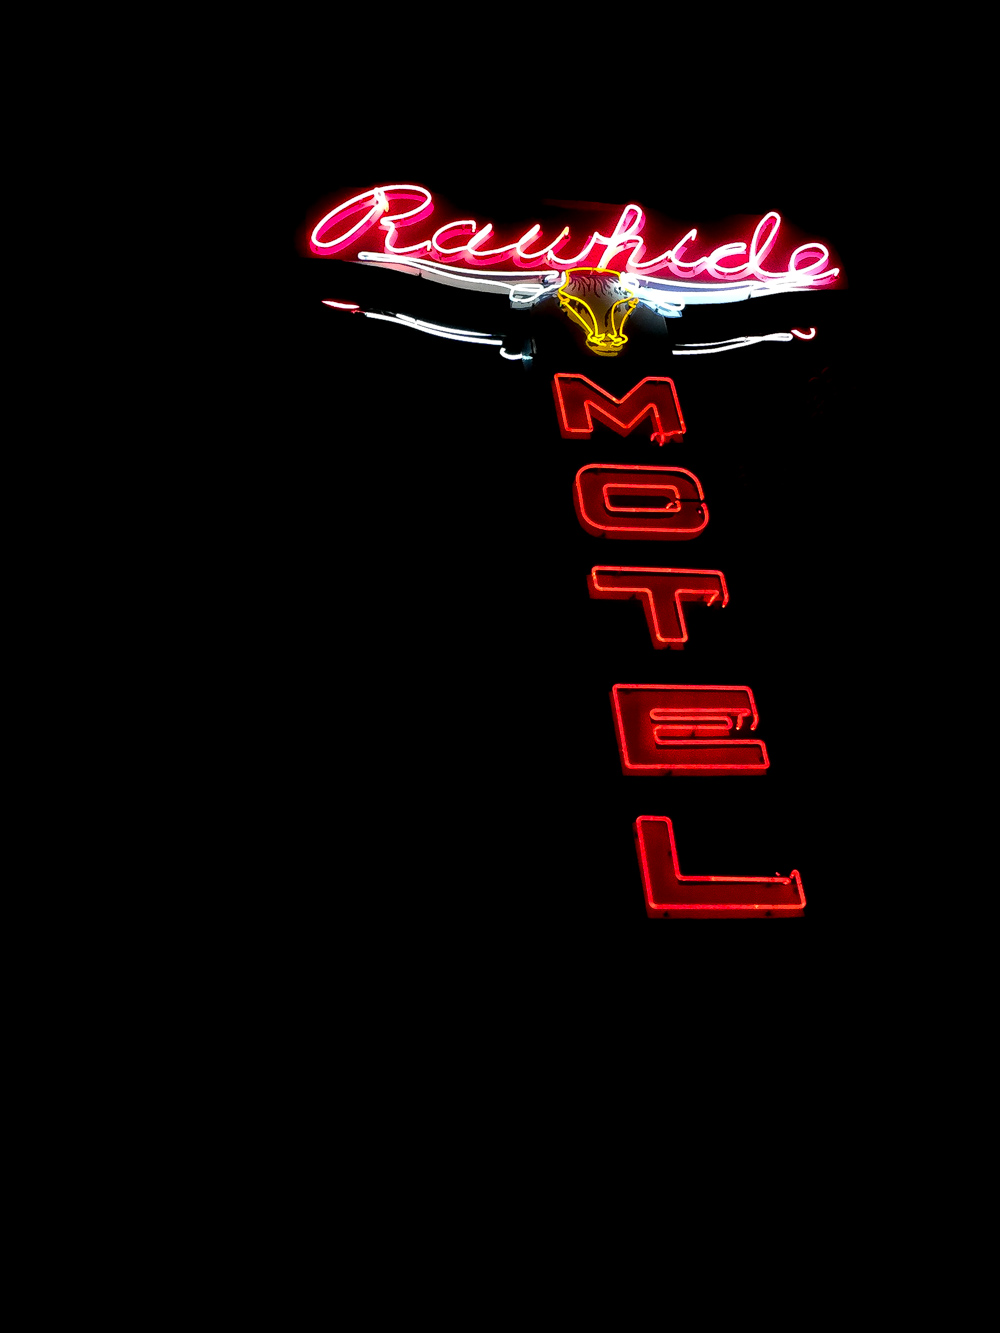 Neon hotel sign in Jackson, WY